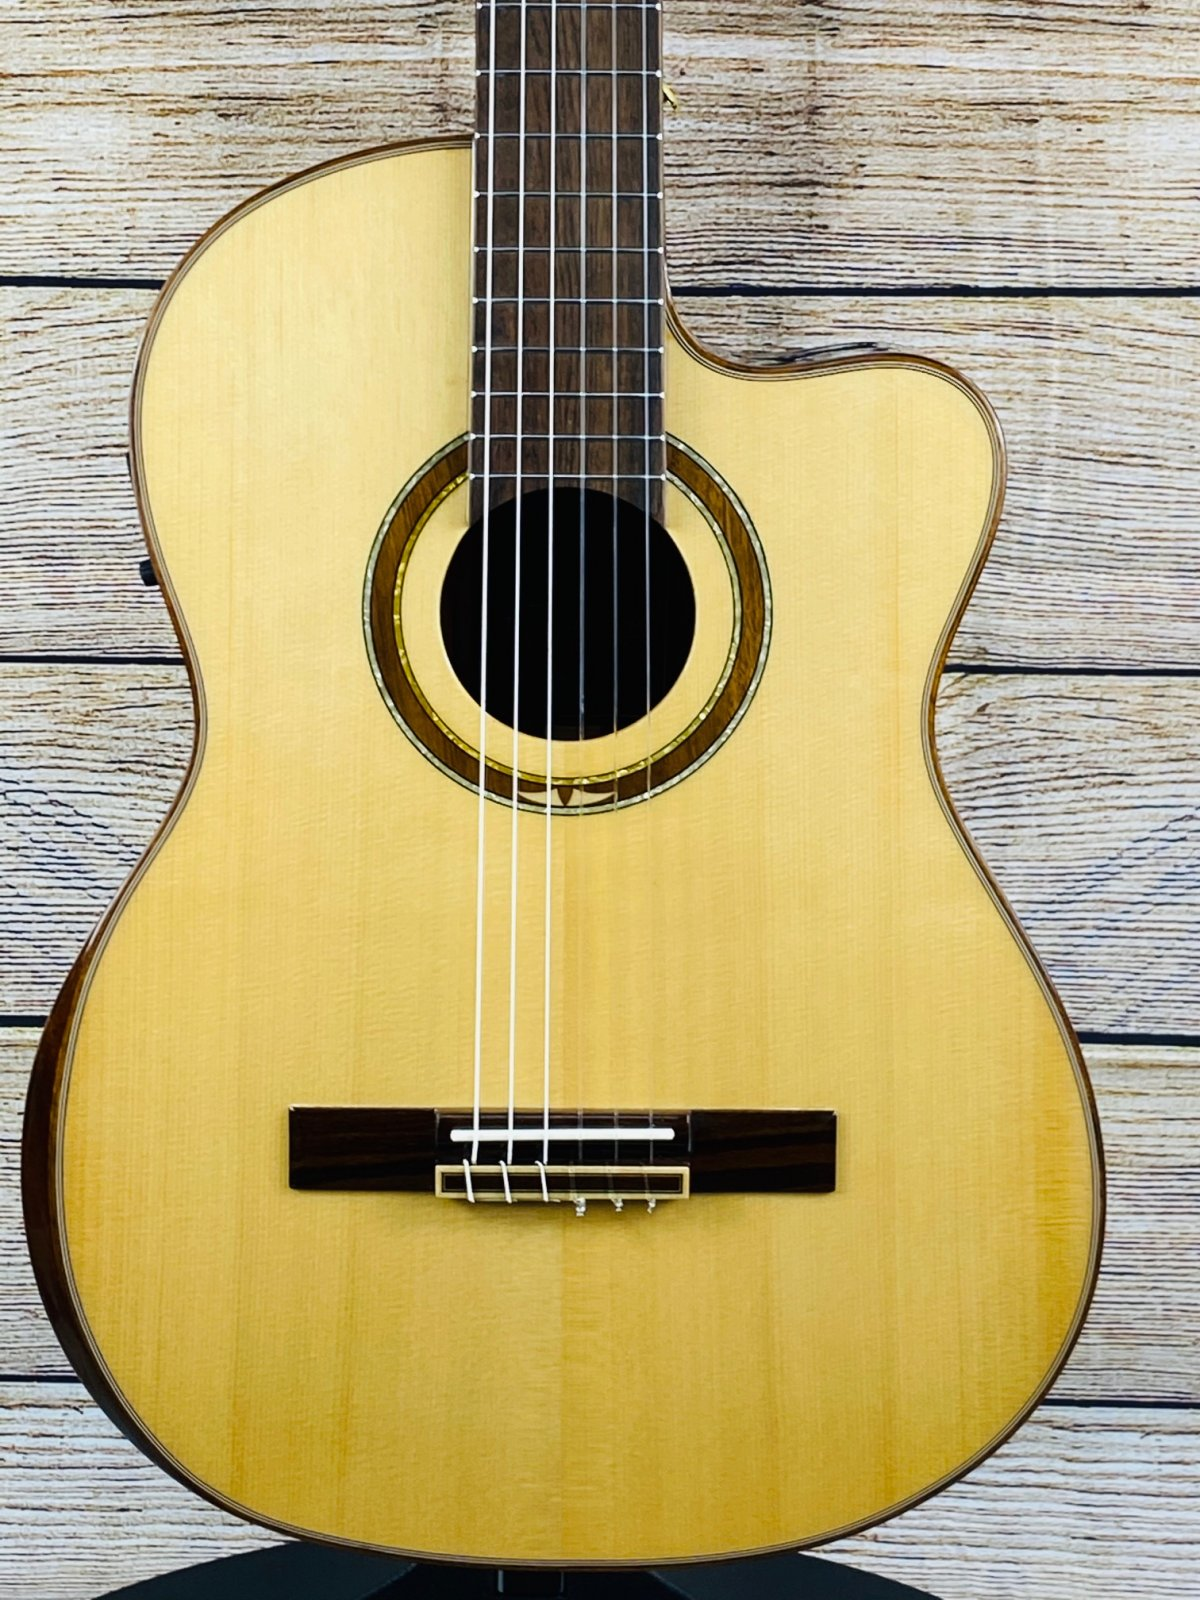 Ortega STRIPED SUITE Nylon Classical Acoustic Guitar Natural